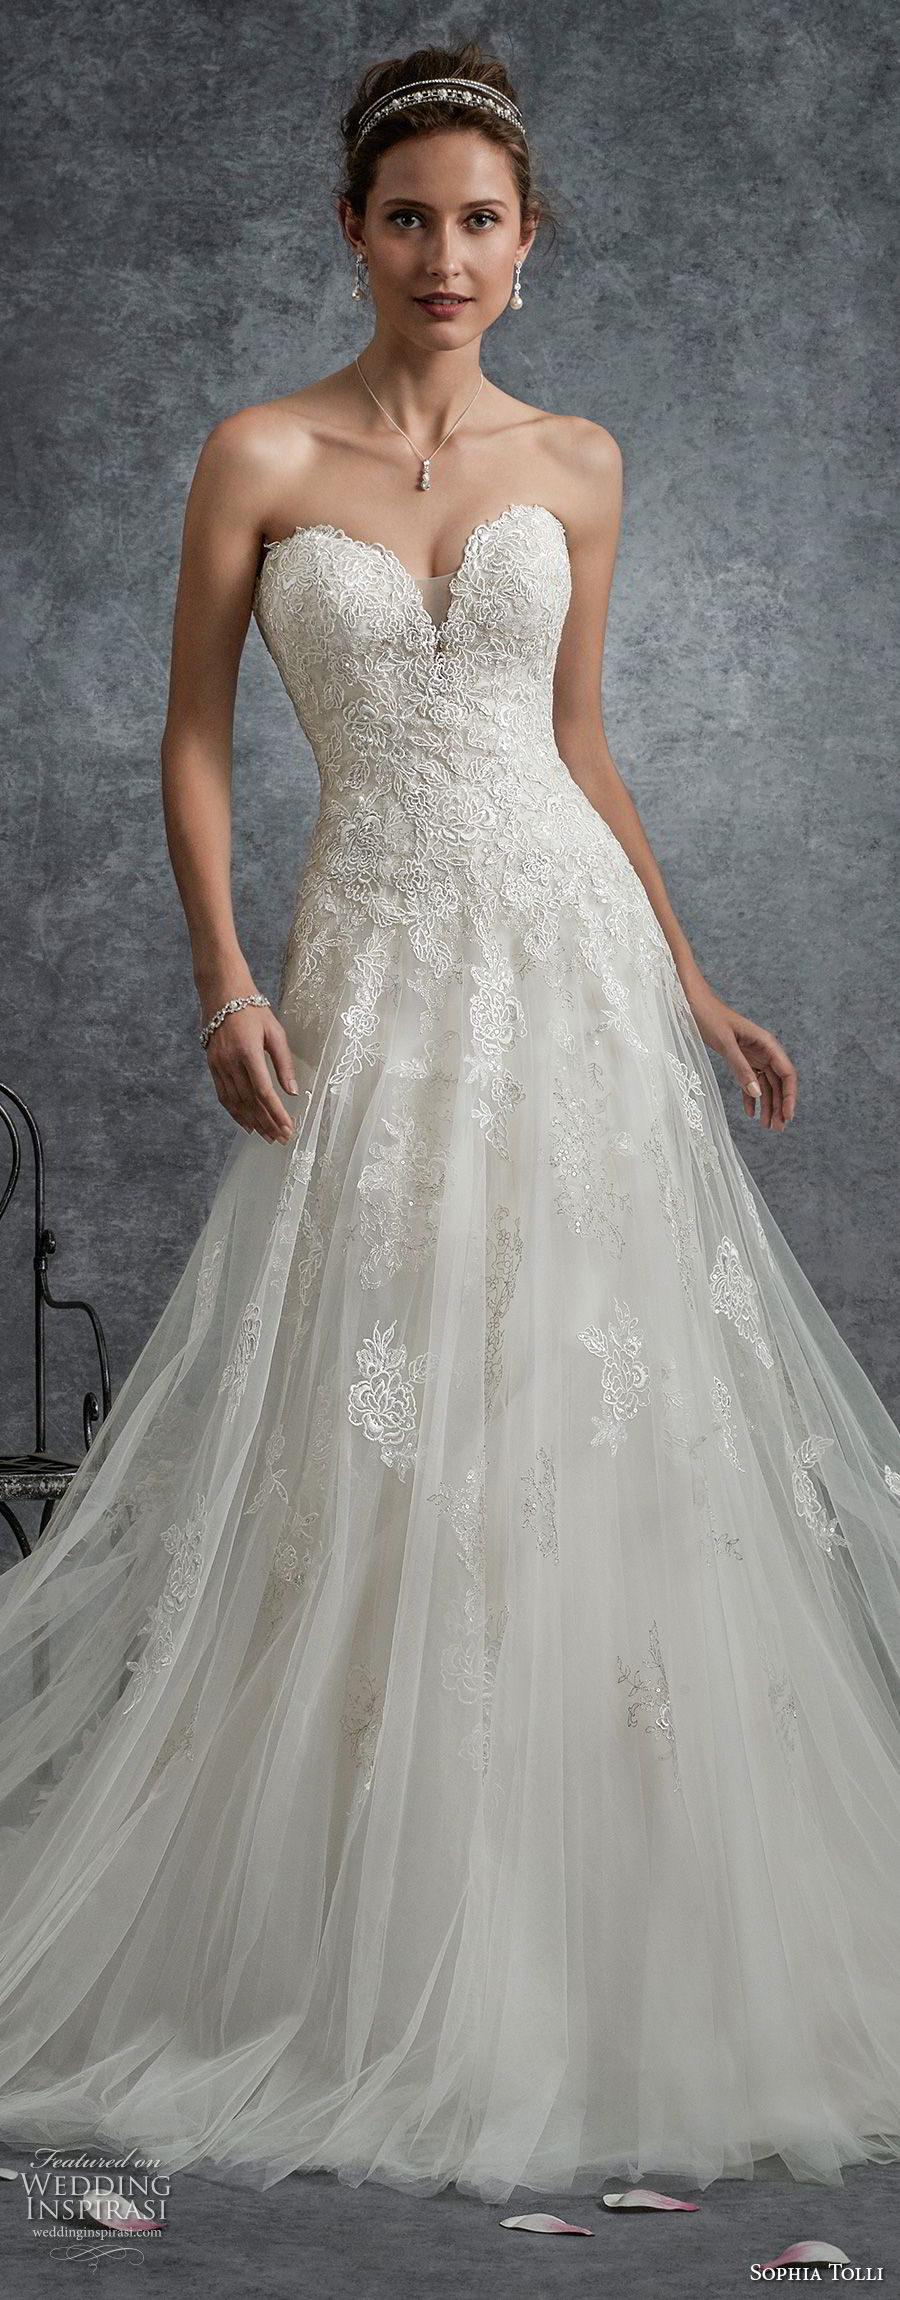 Sweetheart Line Lace Wedding Dress Neckline Flare Fit And Tulle And Embellished Soft